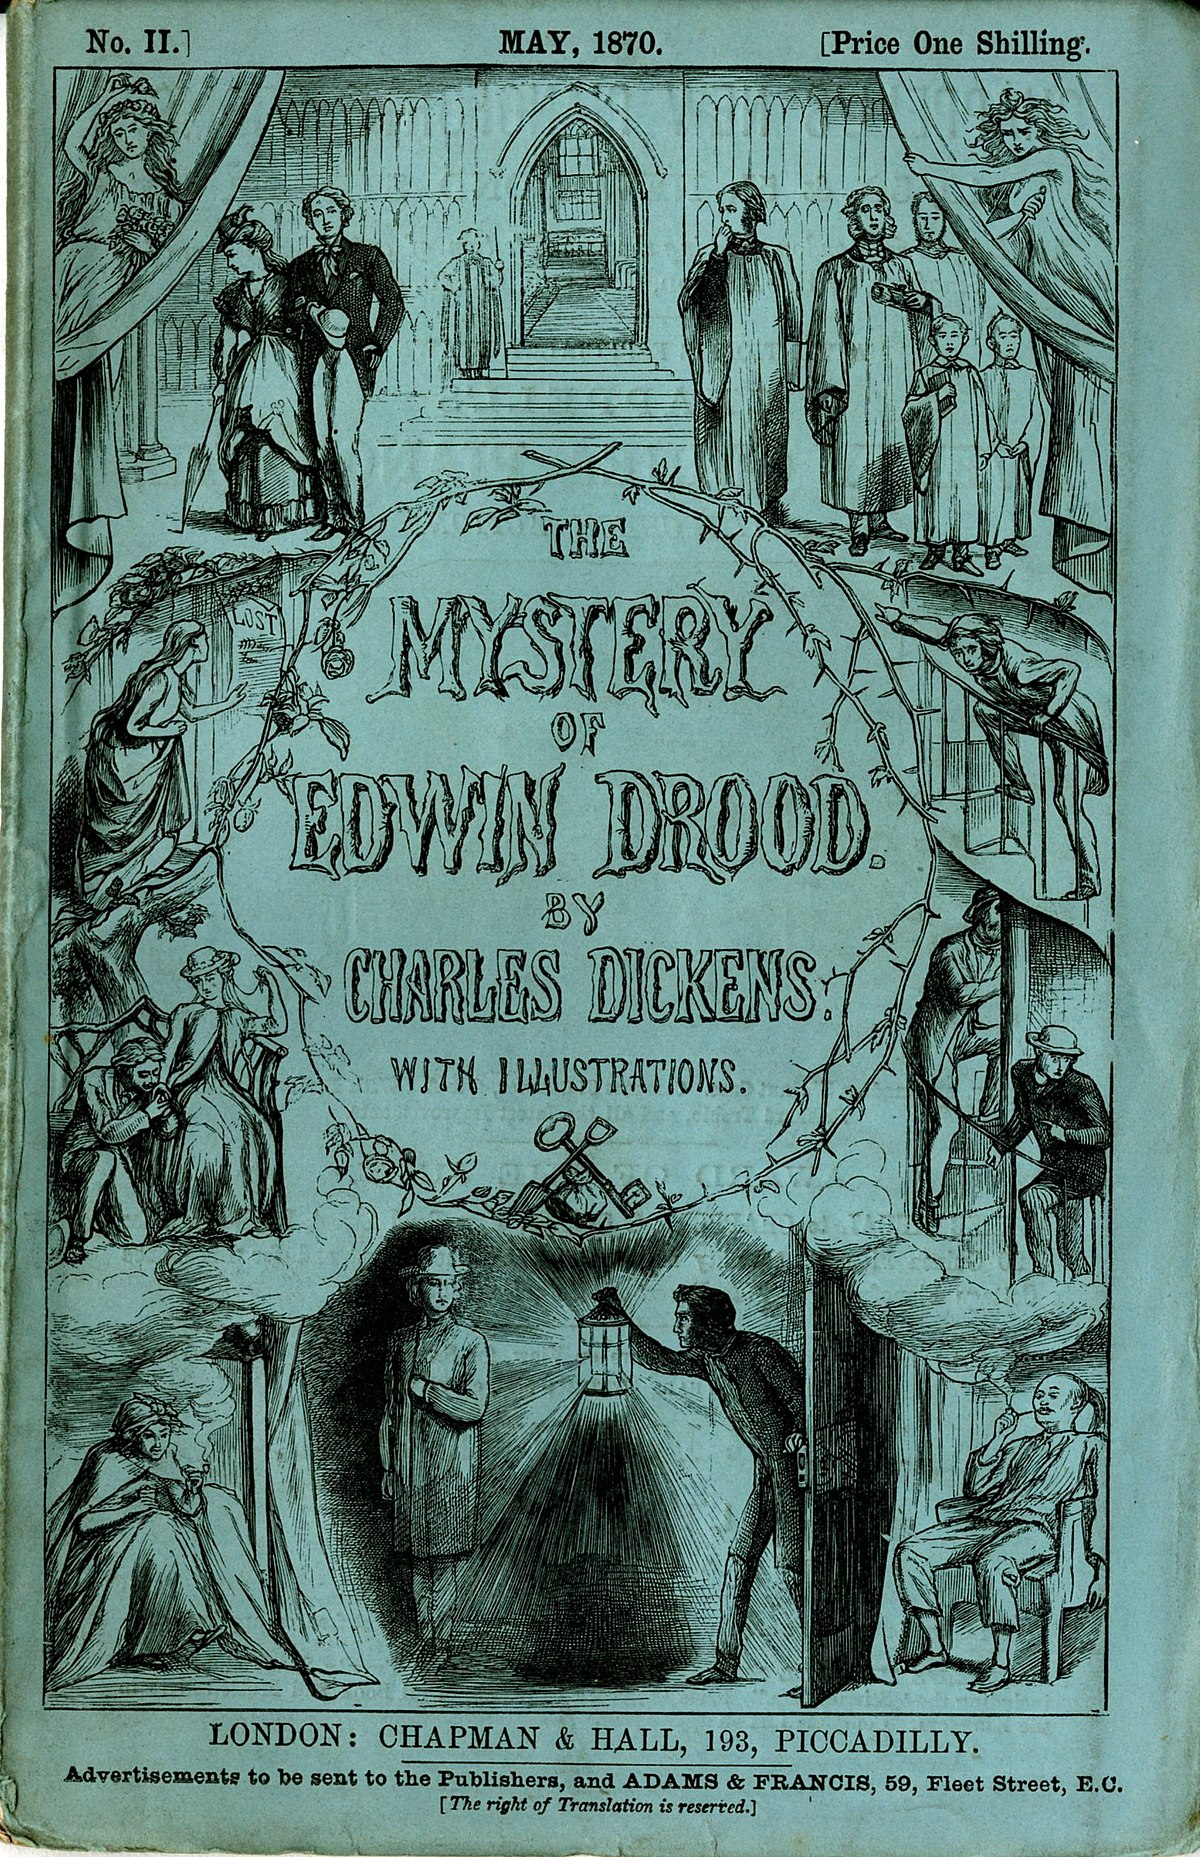 A literary analysis of the mystery of edwin drood by charles dickens